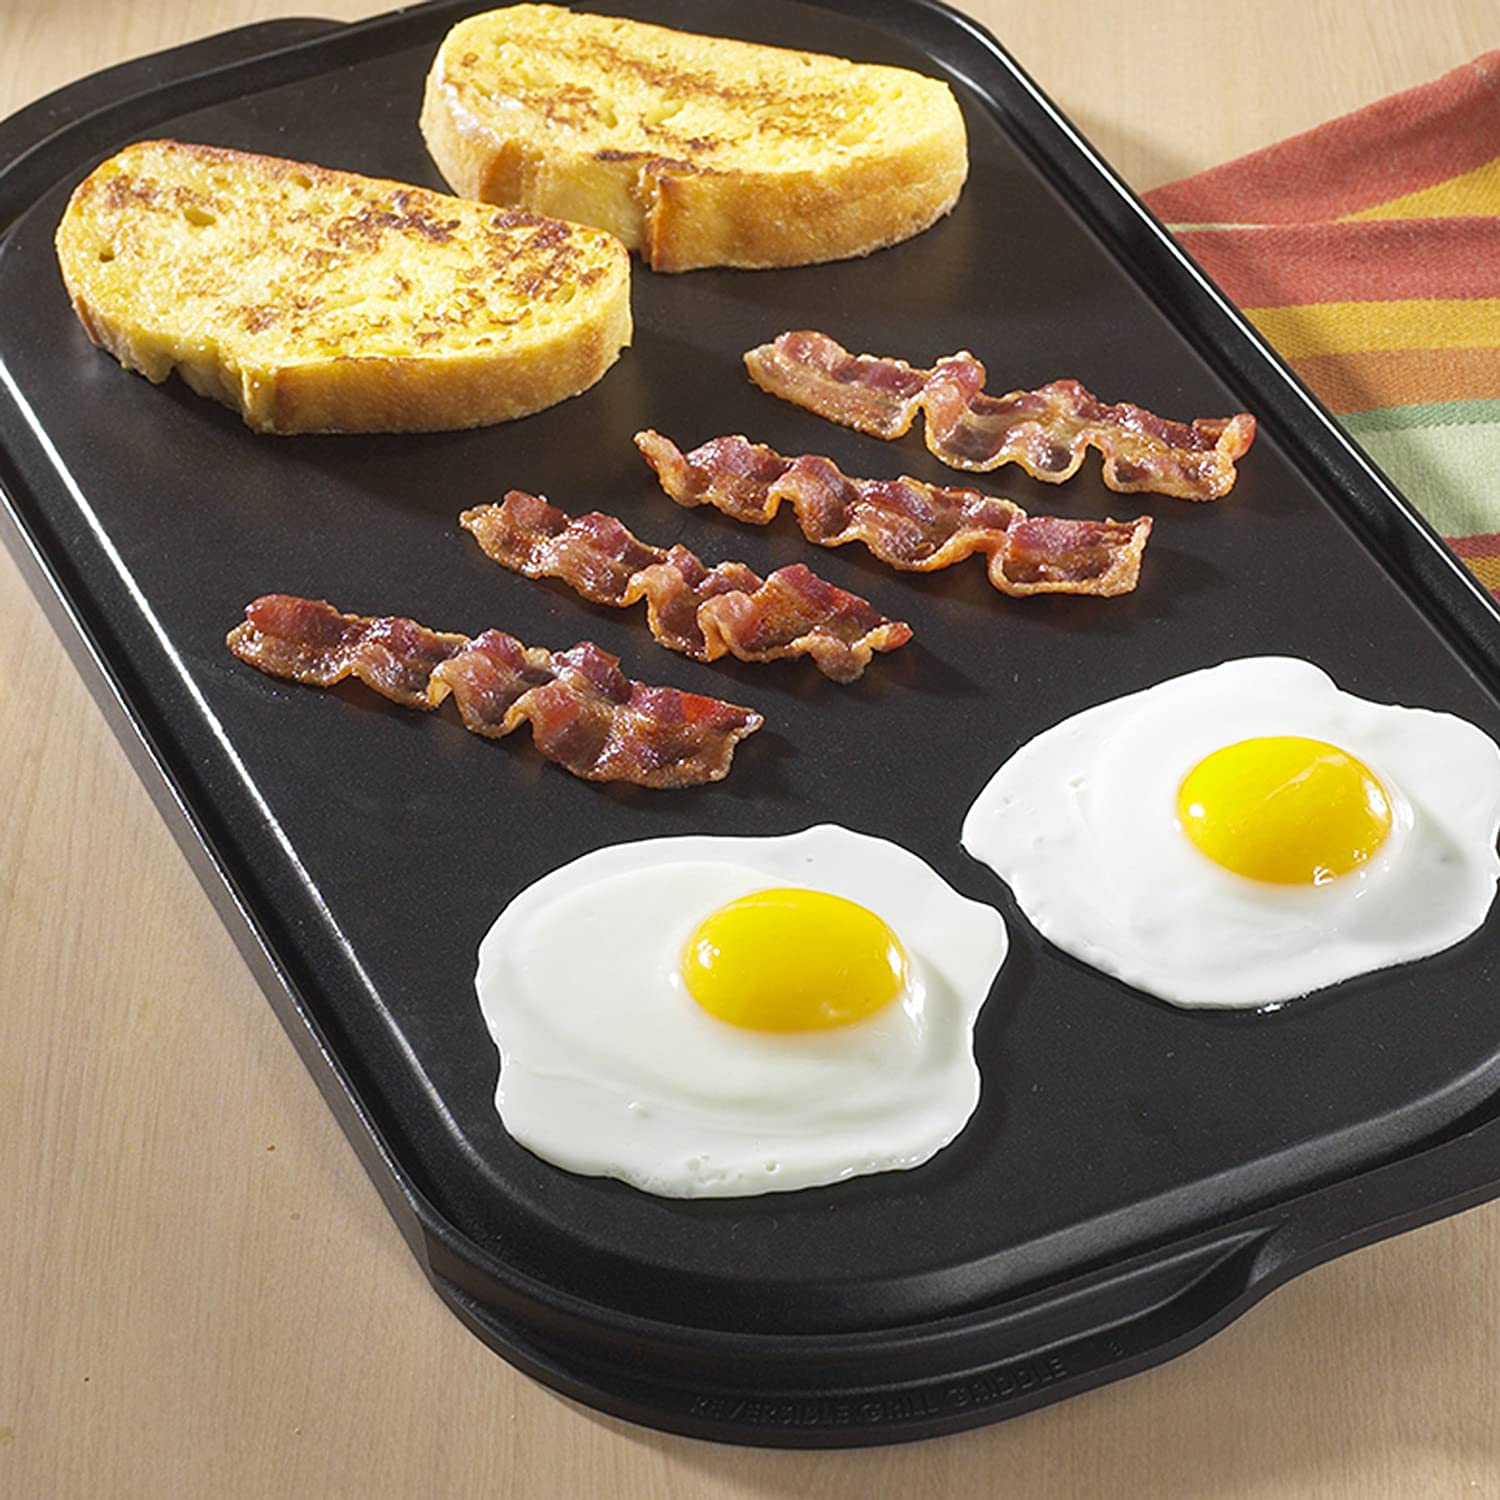 Nordic Ware Pro Cast Flat Top Reversible Grill Griddle Amazon